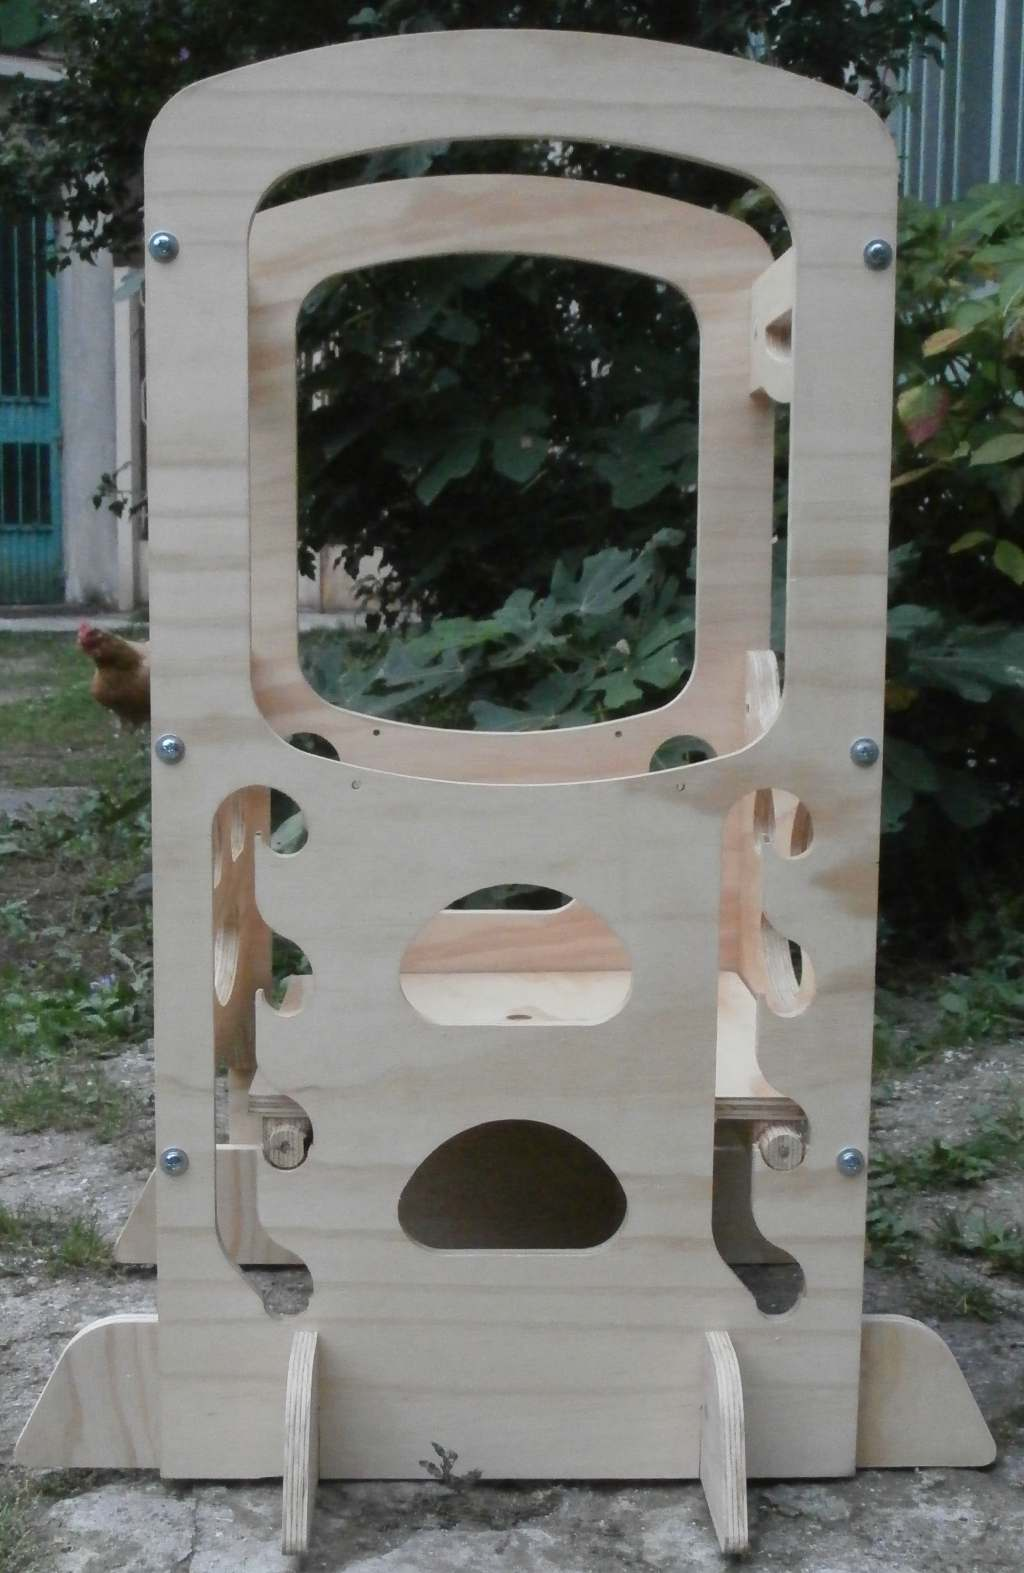 Torre dell'apprendimento Montessoriano - Learning Tower